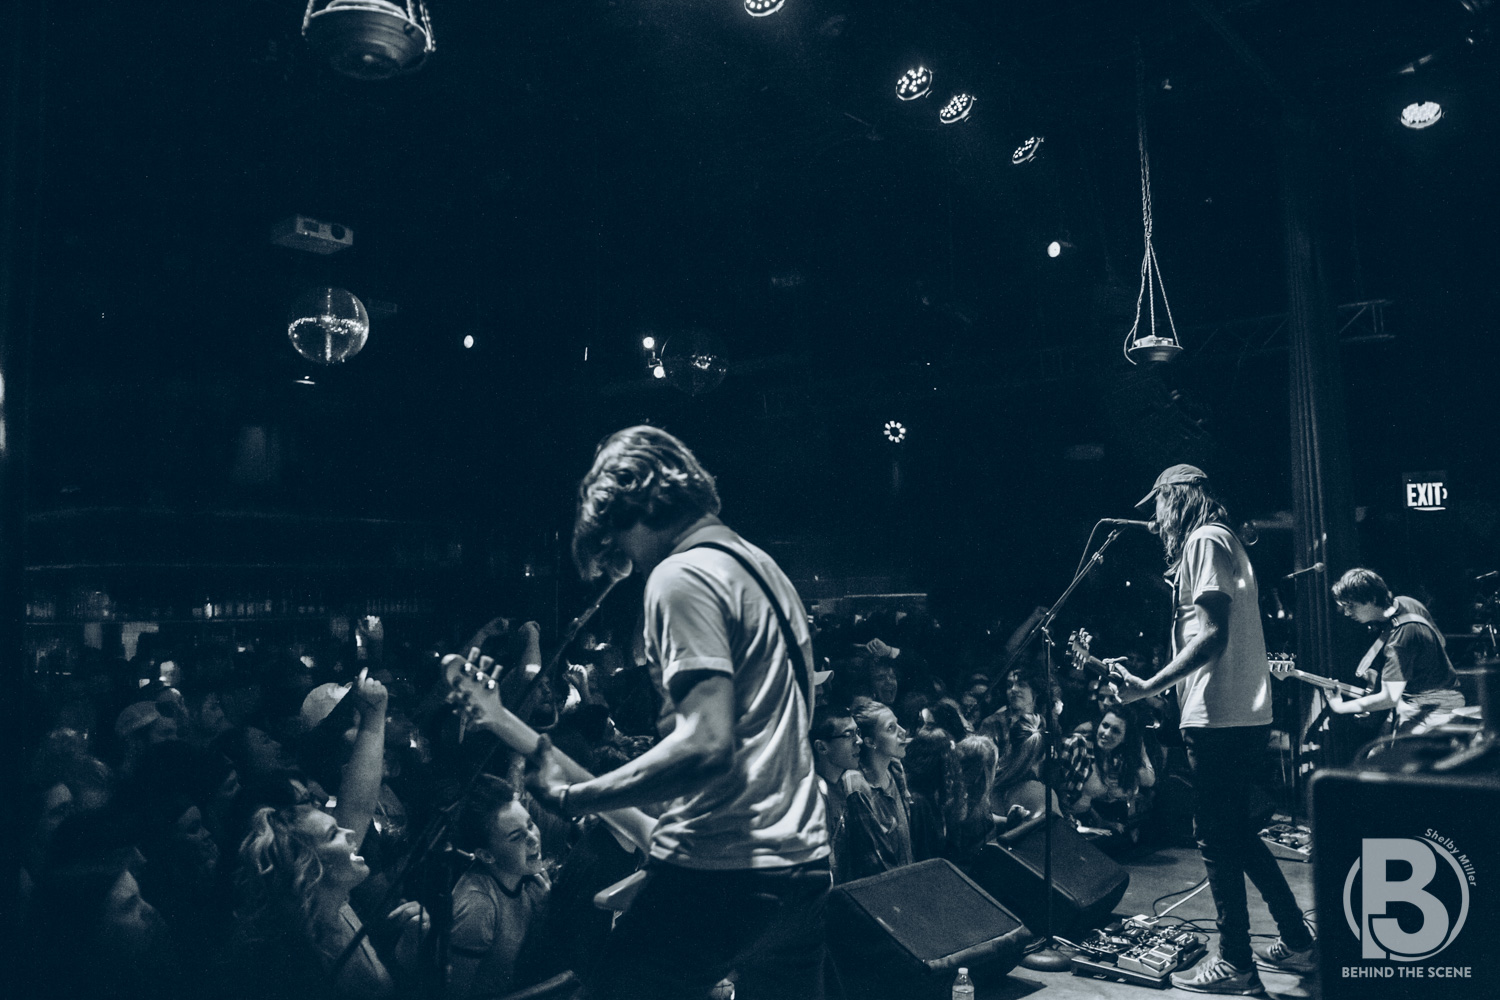 042316 Sorority Noise SM5.jpg